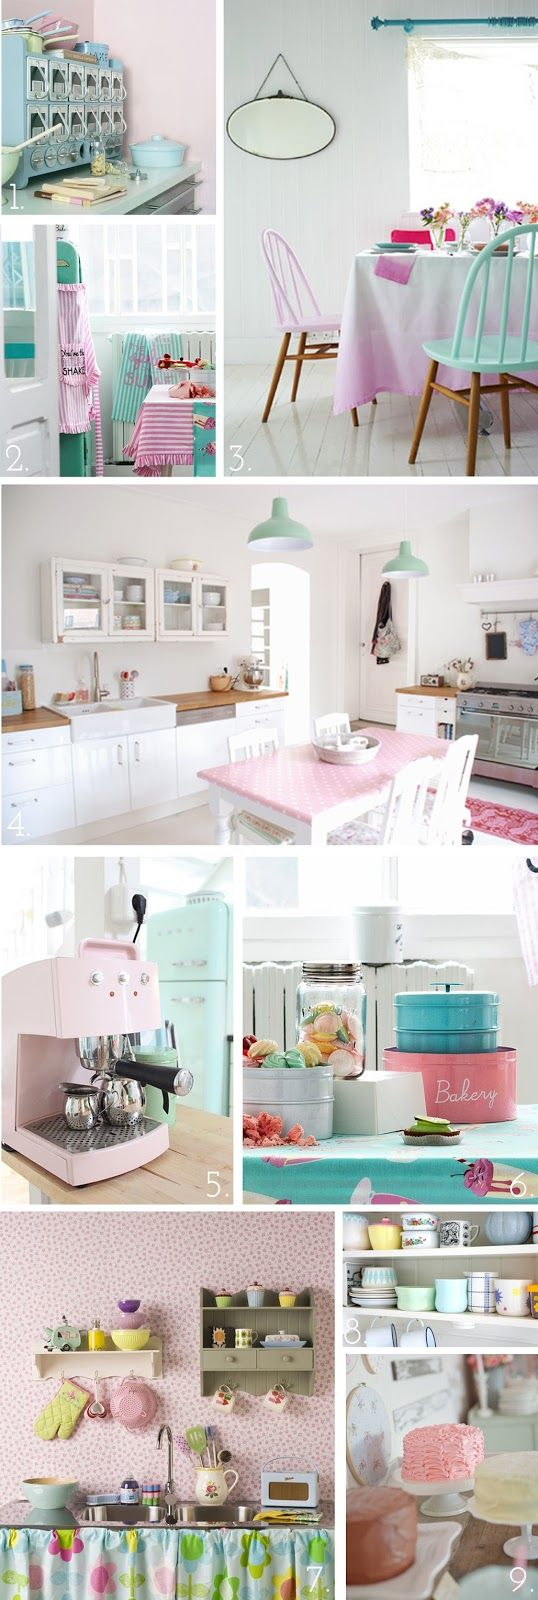 25 Great Ideas About Pretty Pastel On Pinterest